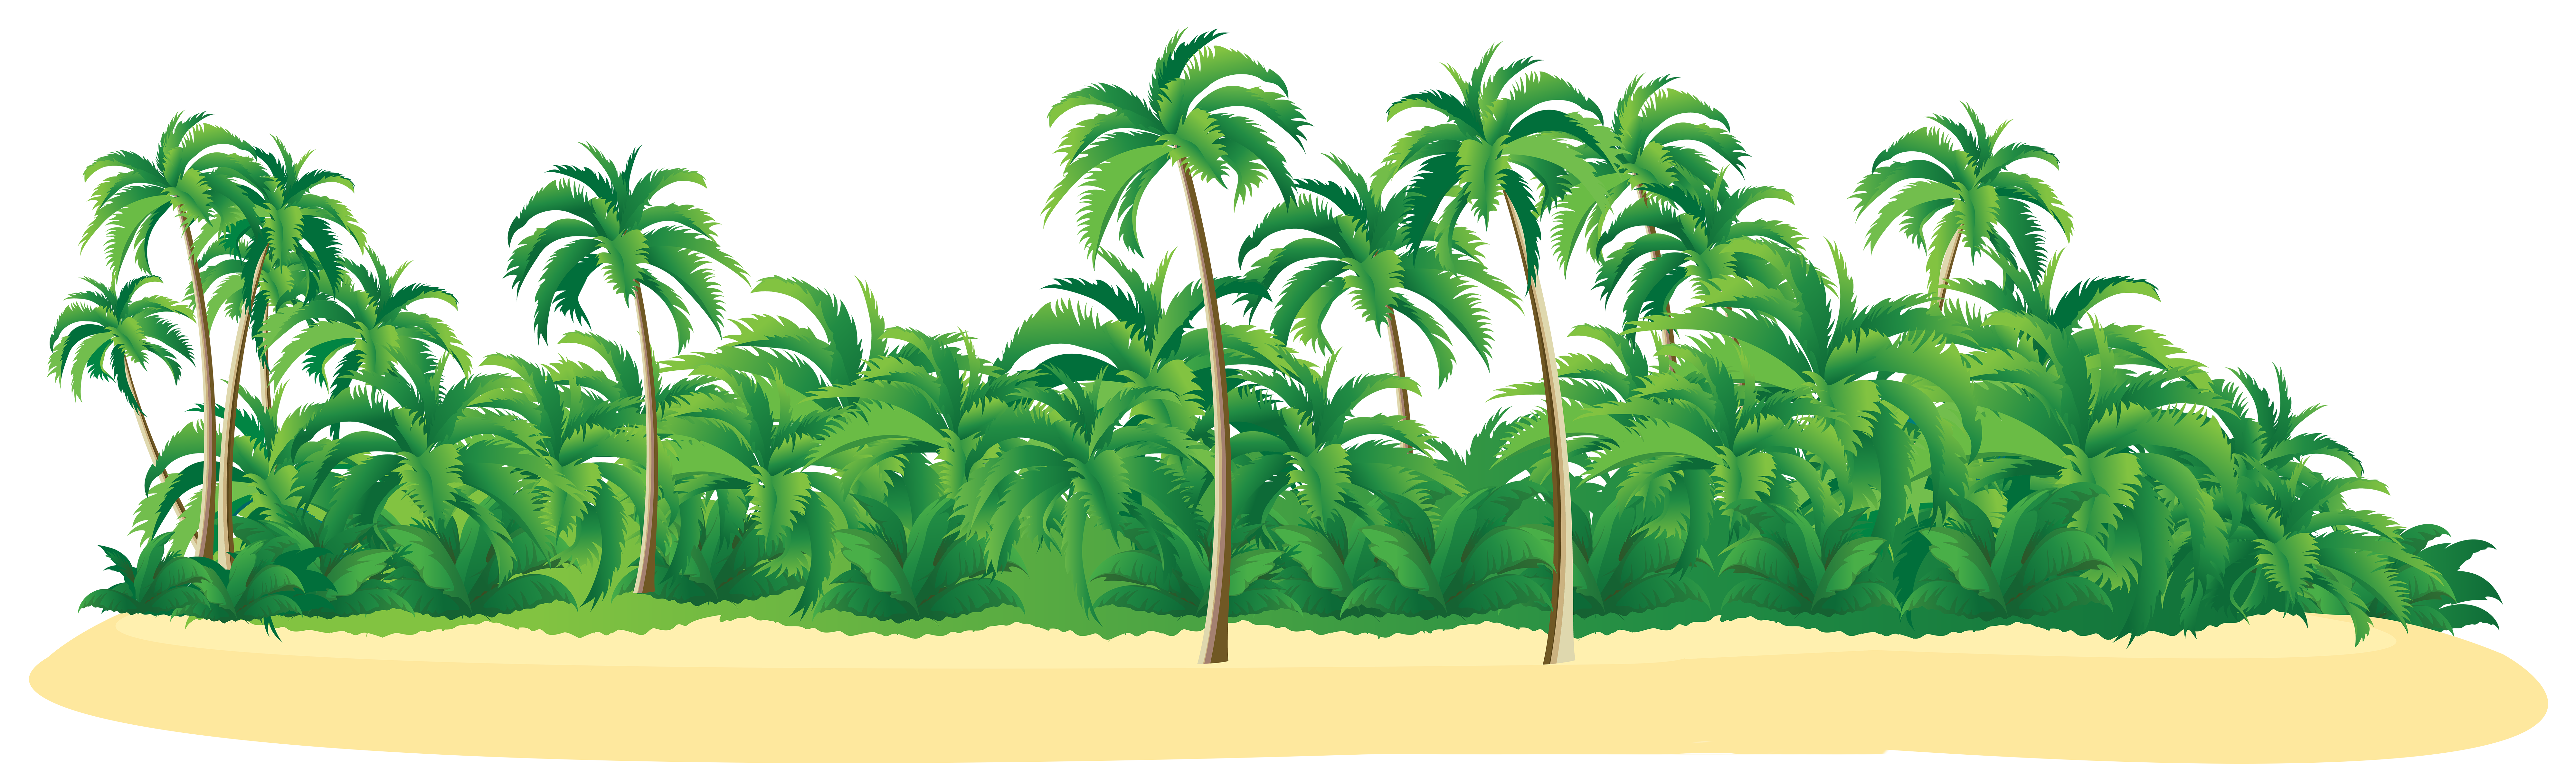 Summer Tropical Island With Palm Trees Png Clip Art Image Gallery Yopriceville High Quality Images And Transpa Palm Tree Png Pine Tree Art Oak Tree Tattoo